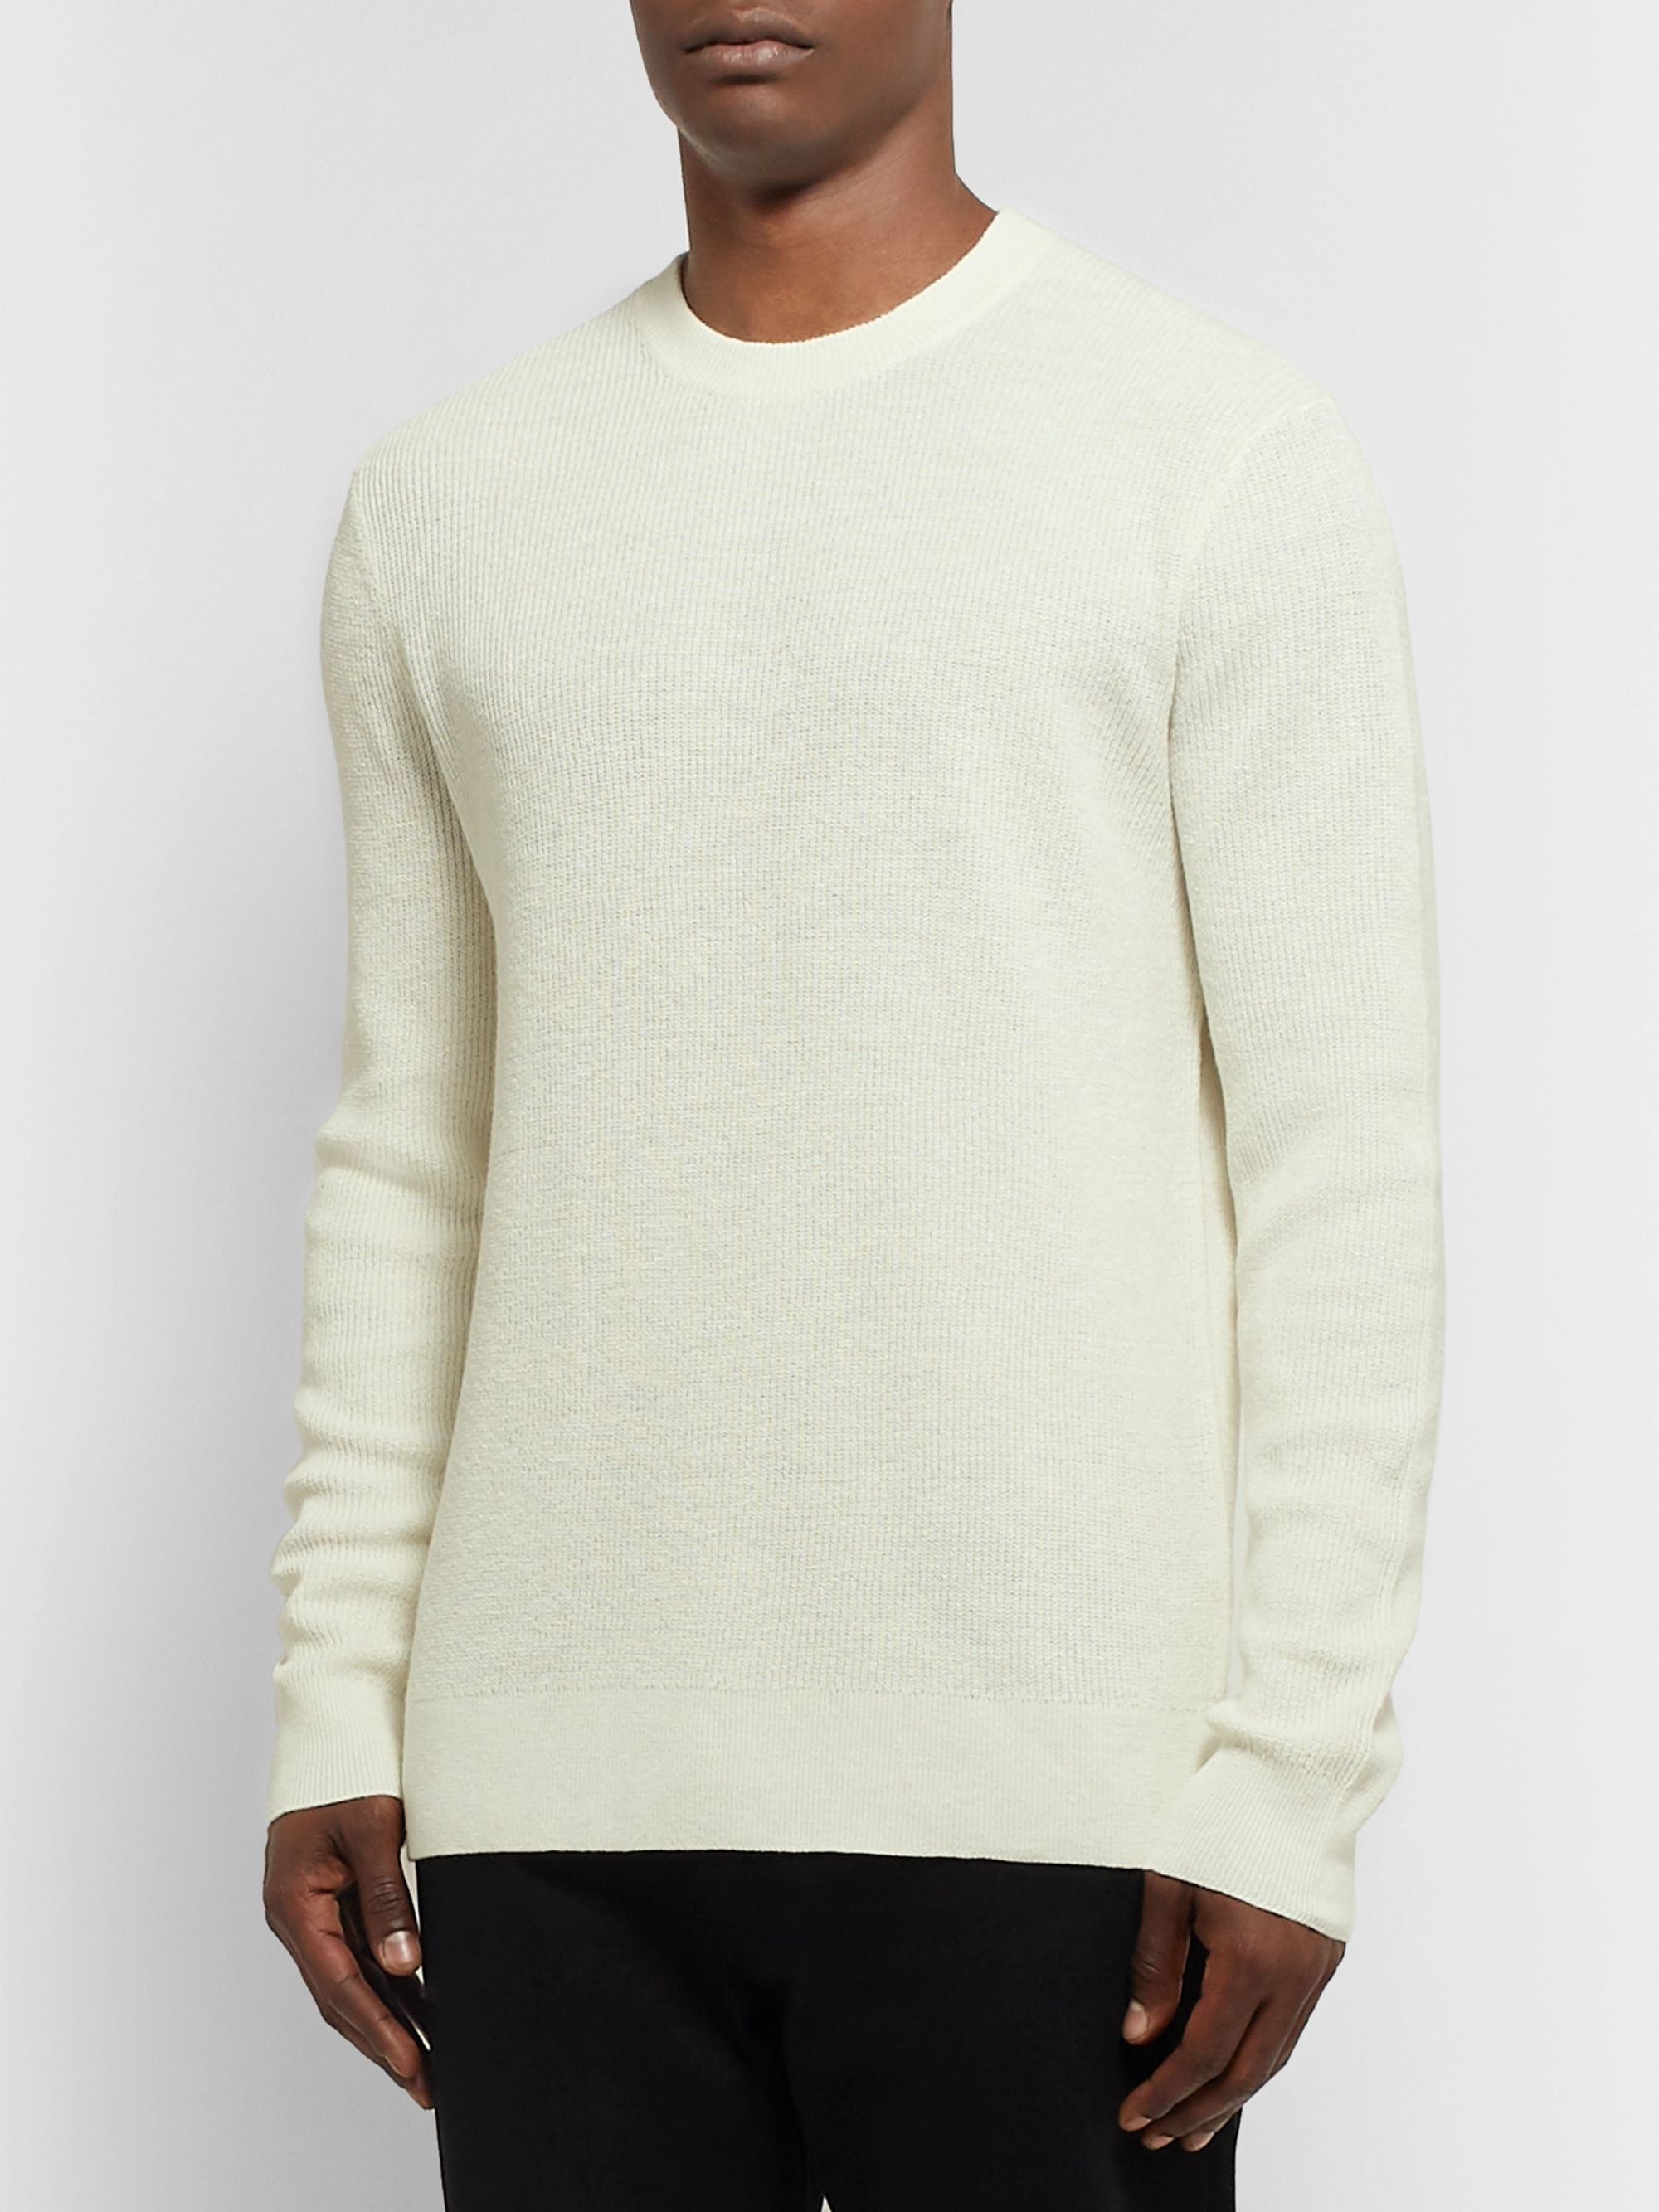 Theory Davies Textured-Knit Linen-Blend Sweater